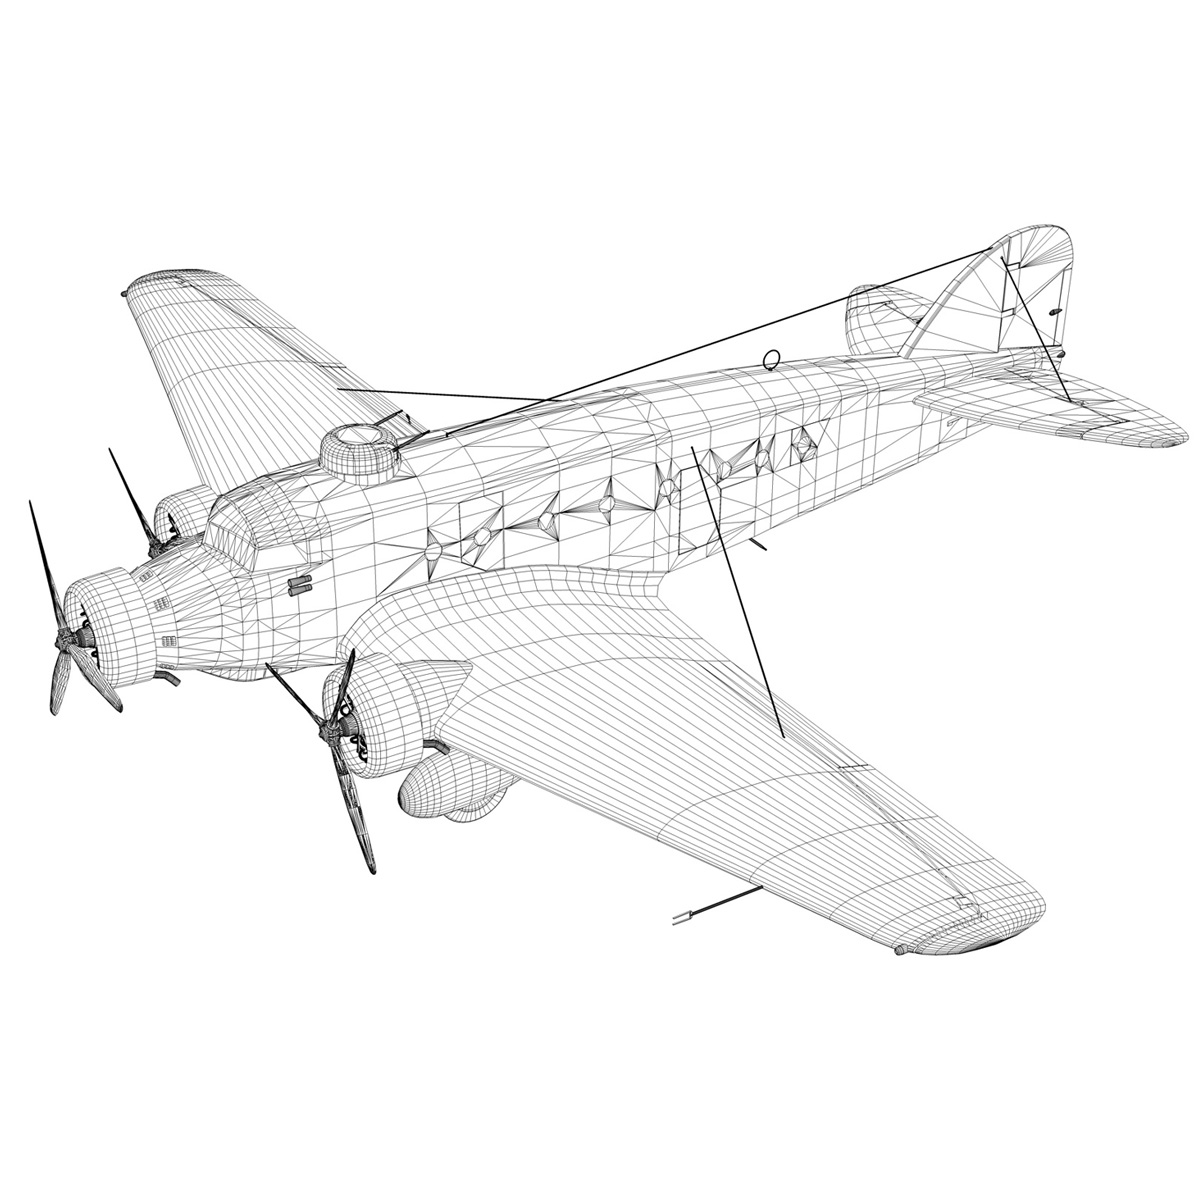 savoia-marchetti sm.81 – spanish civil war 3d model 3ds fbx c4d lwo obj 274157